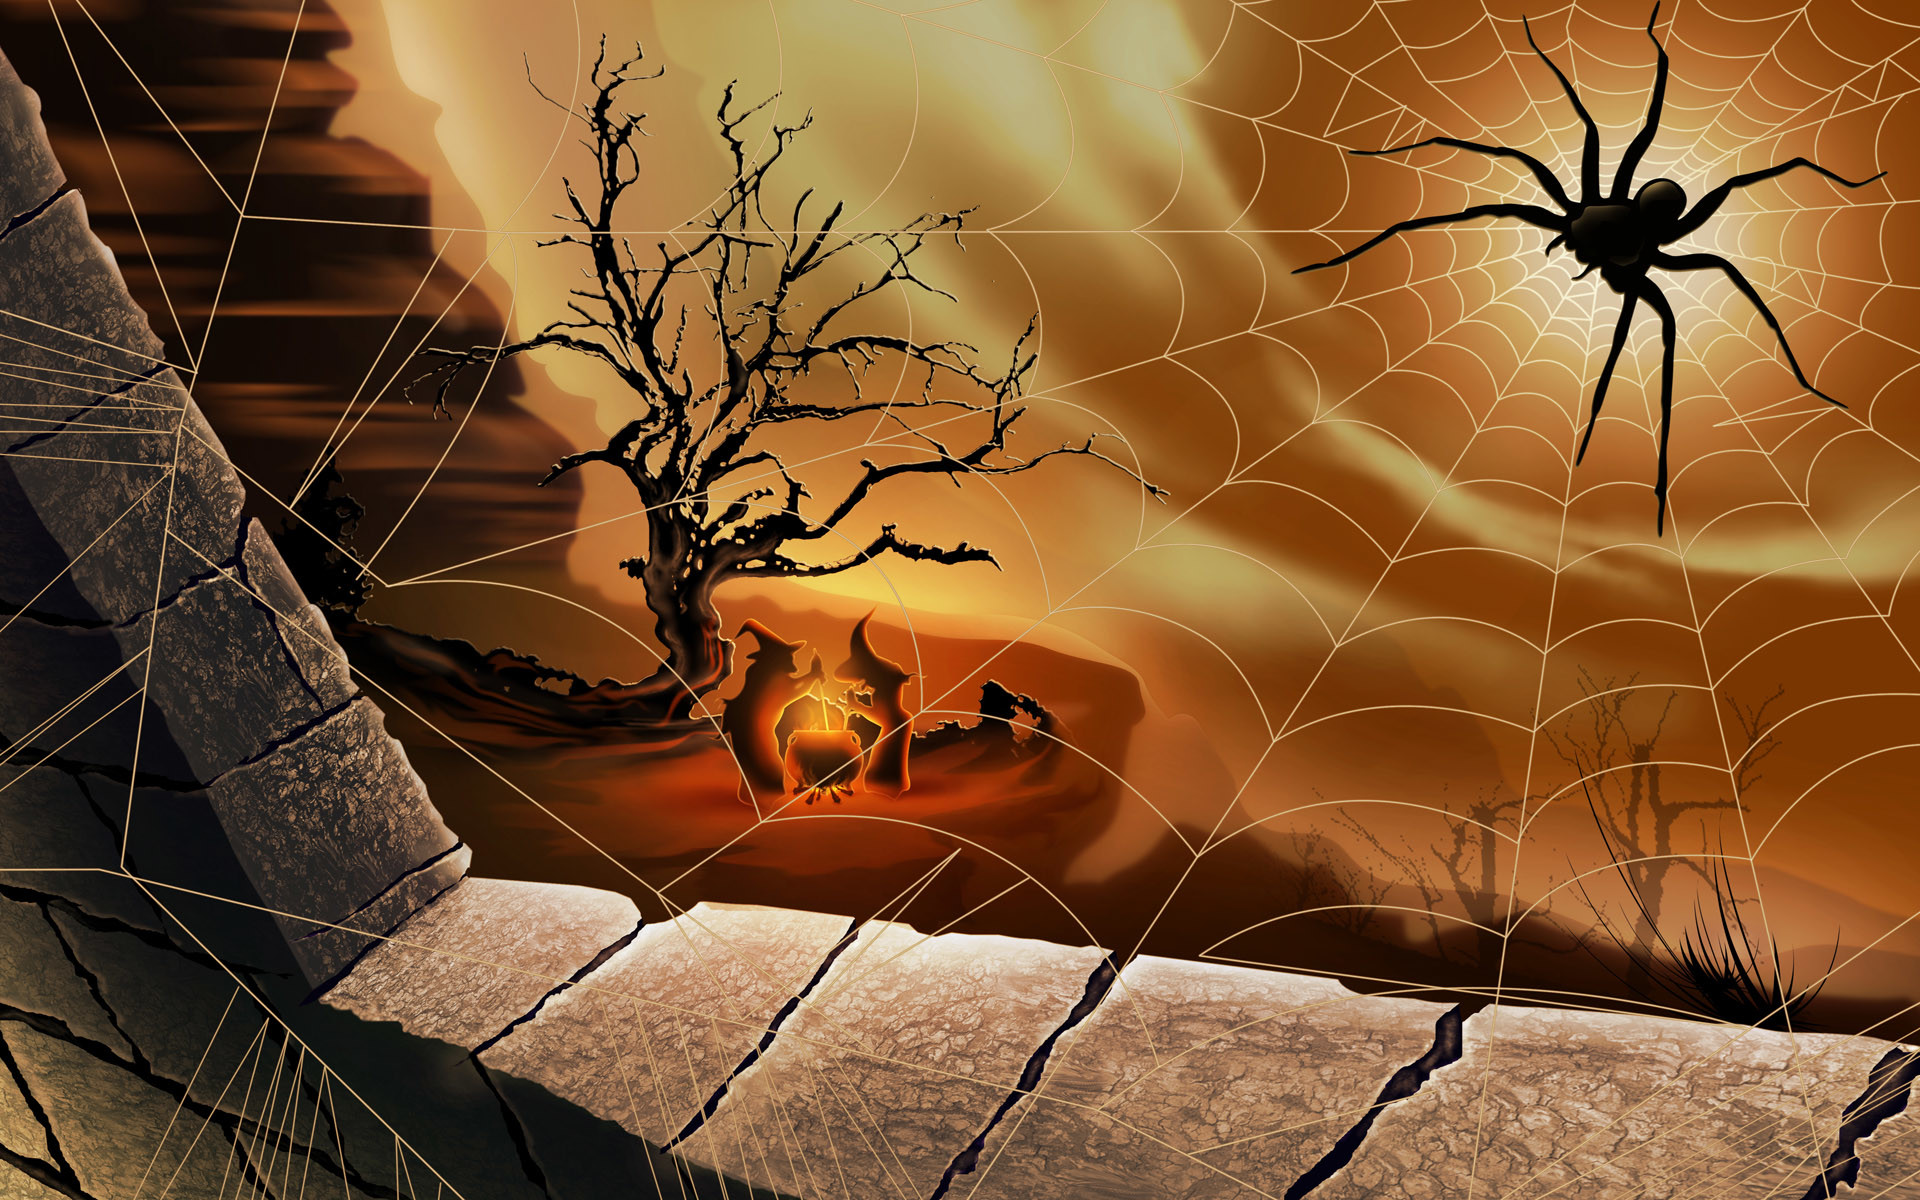 Fall Season Backgrounds - Wallpaper Cave |Free Funny Screensavers Fall Halloween